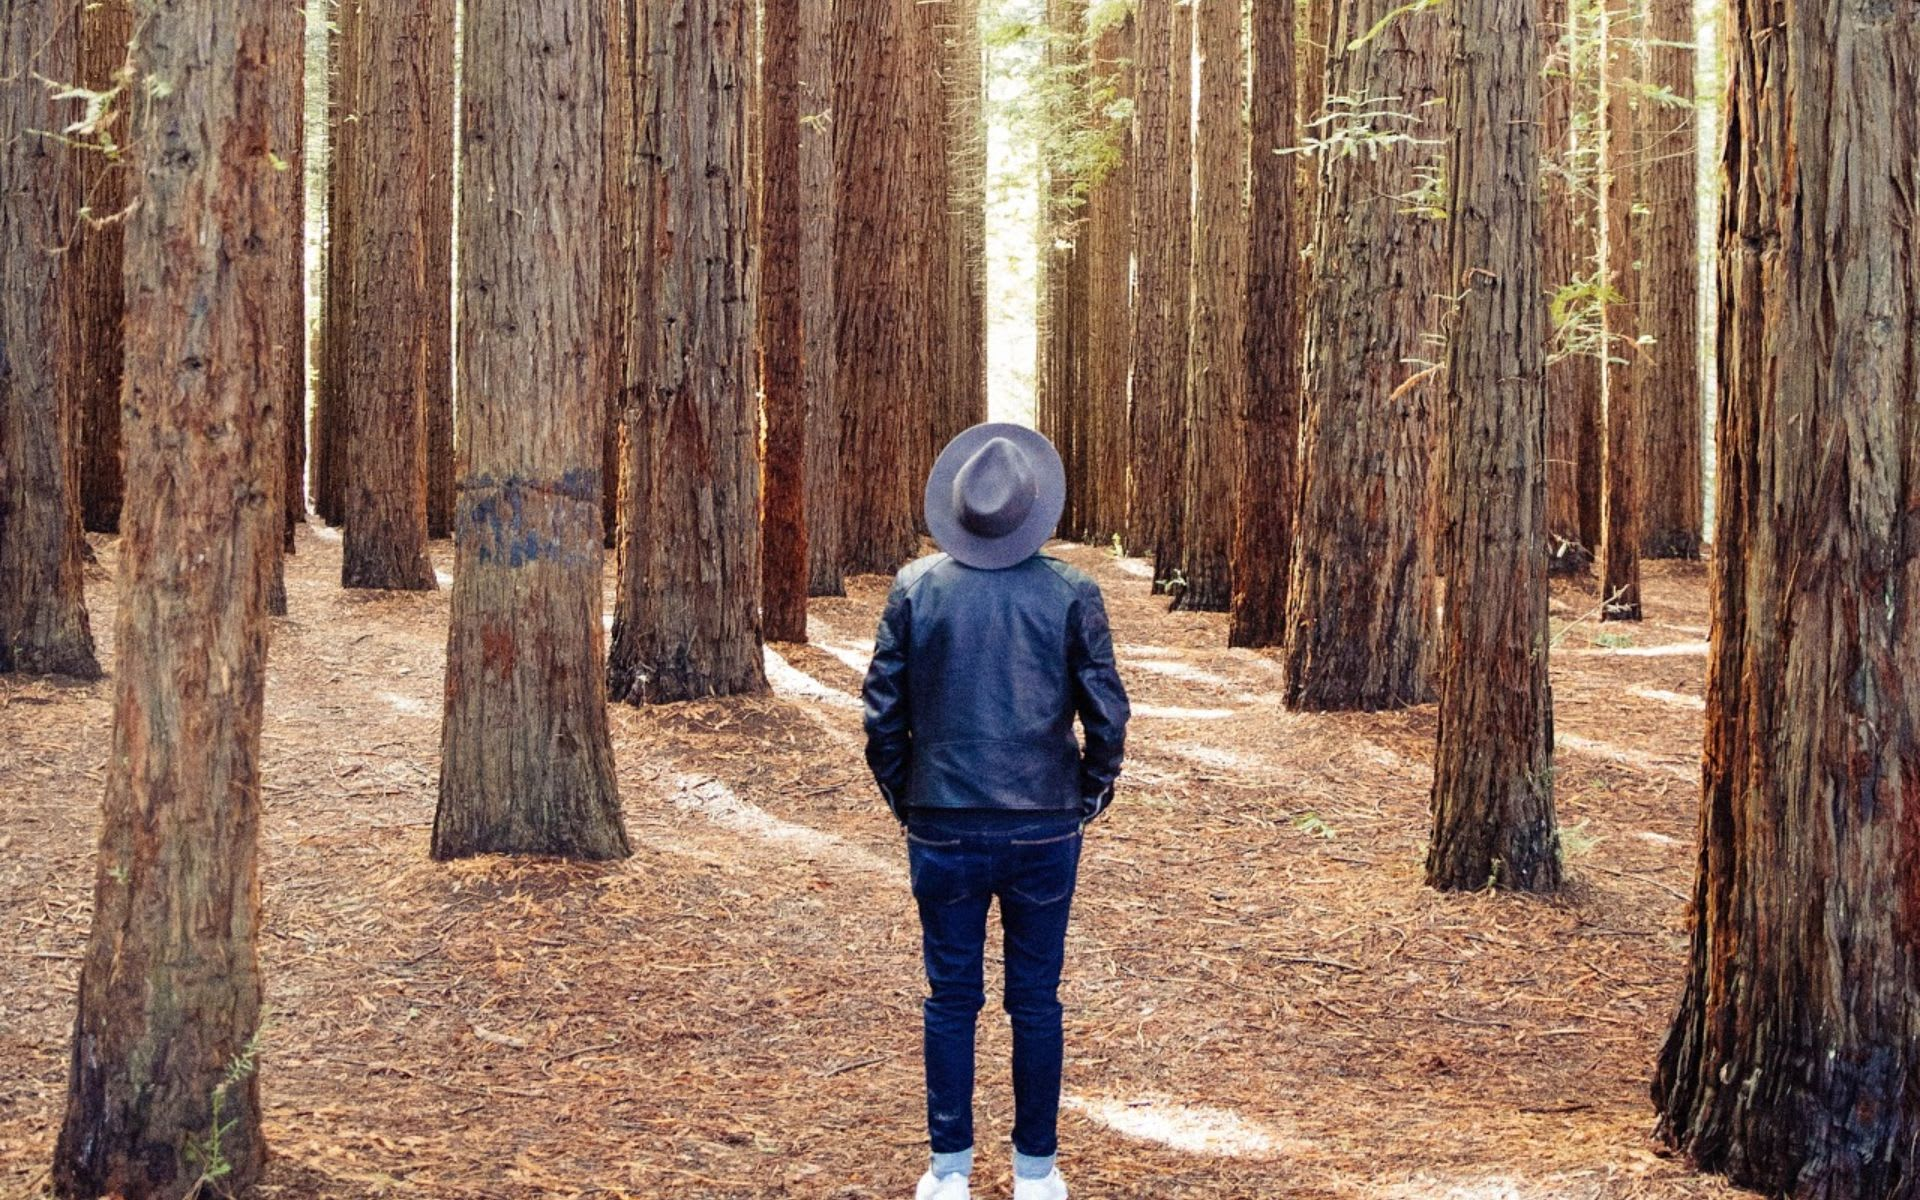 A Majesty of Redwoods: Visiting the Montgomery Woods State Reserve